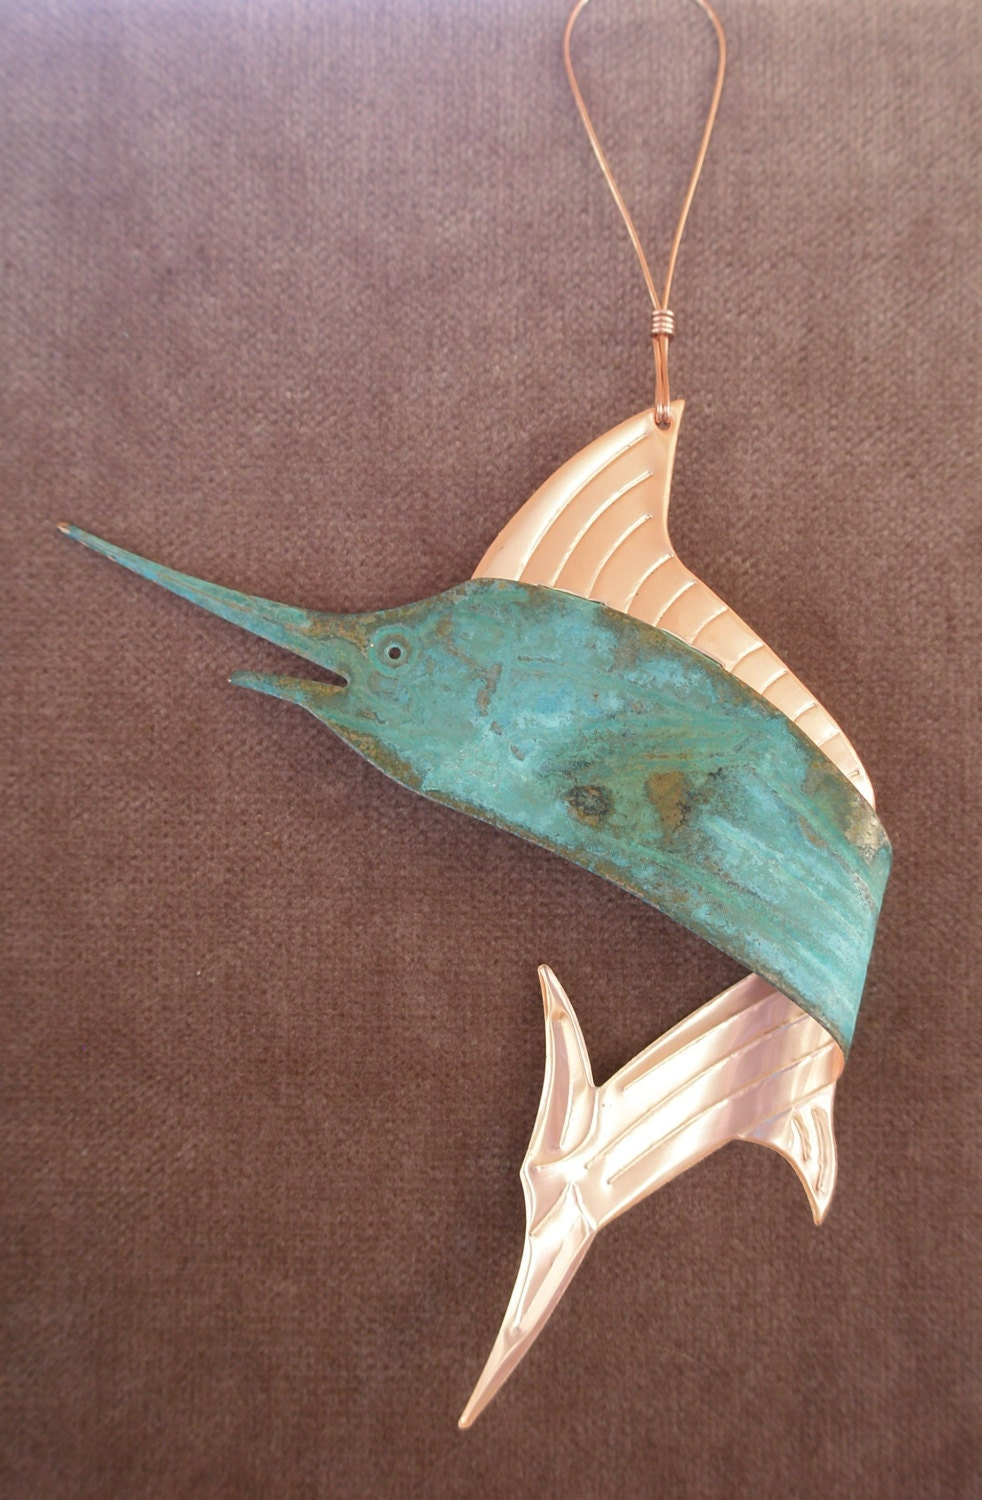 SAILFISH SWORDFISH Marlin Copper Verdigris Ornament - Handcrafted in The Copper State (Arizona USA)